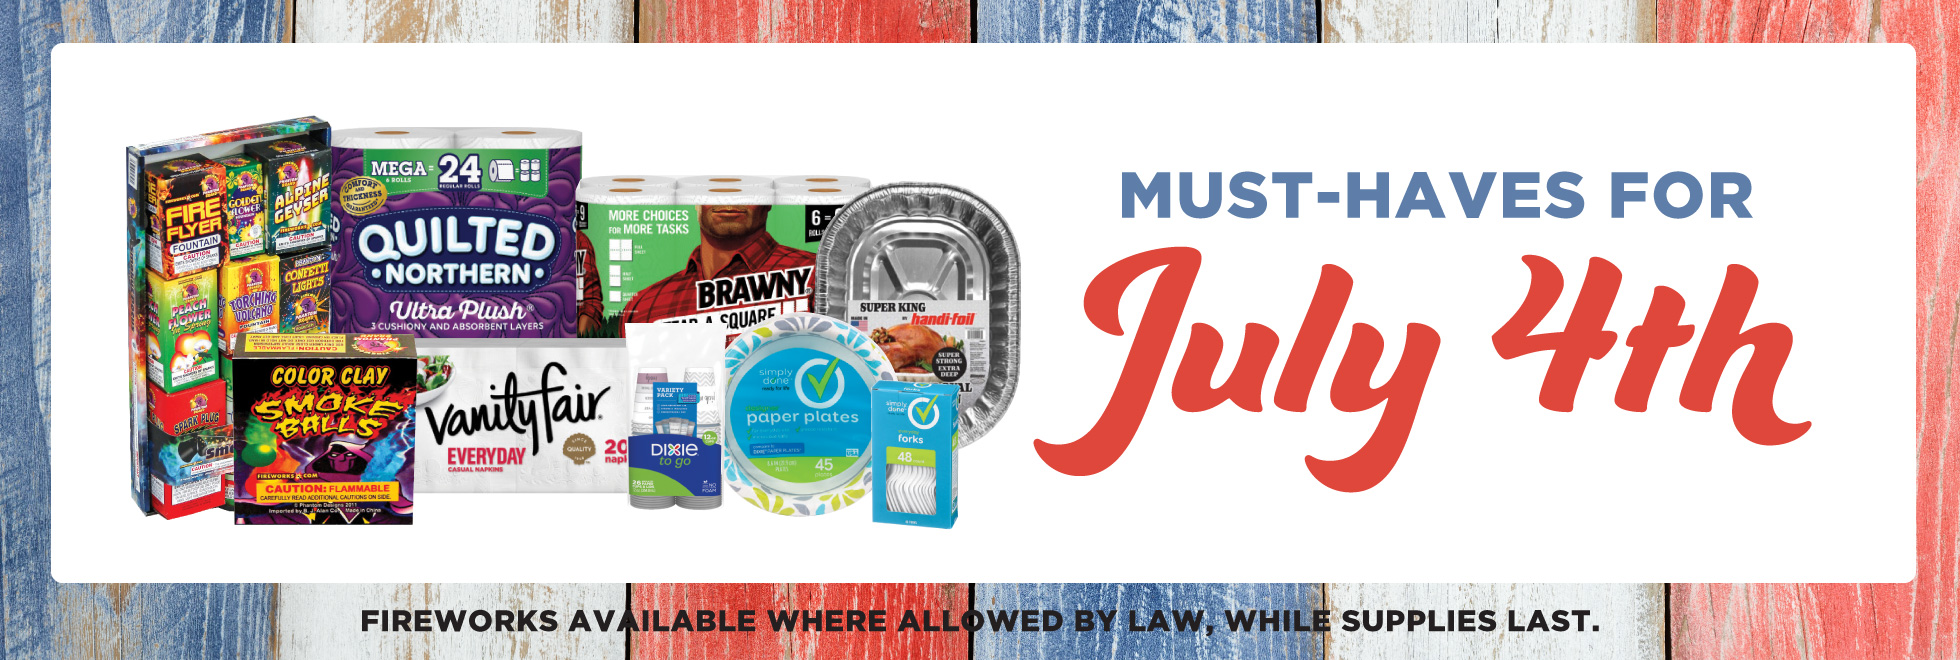 Household Sale Must Haves for the 4th of July